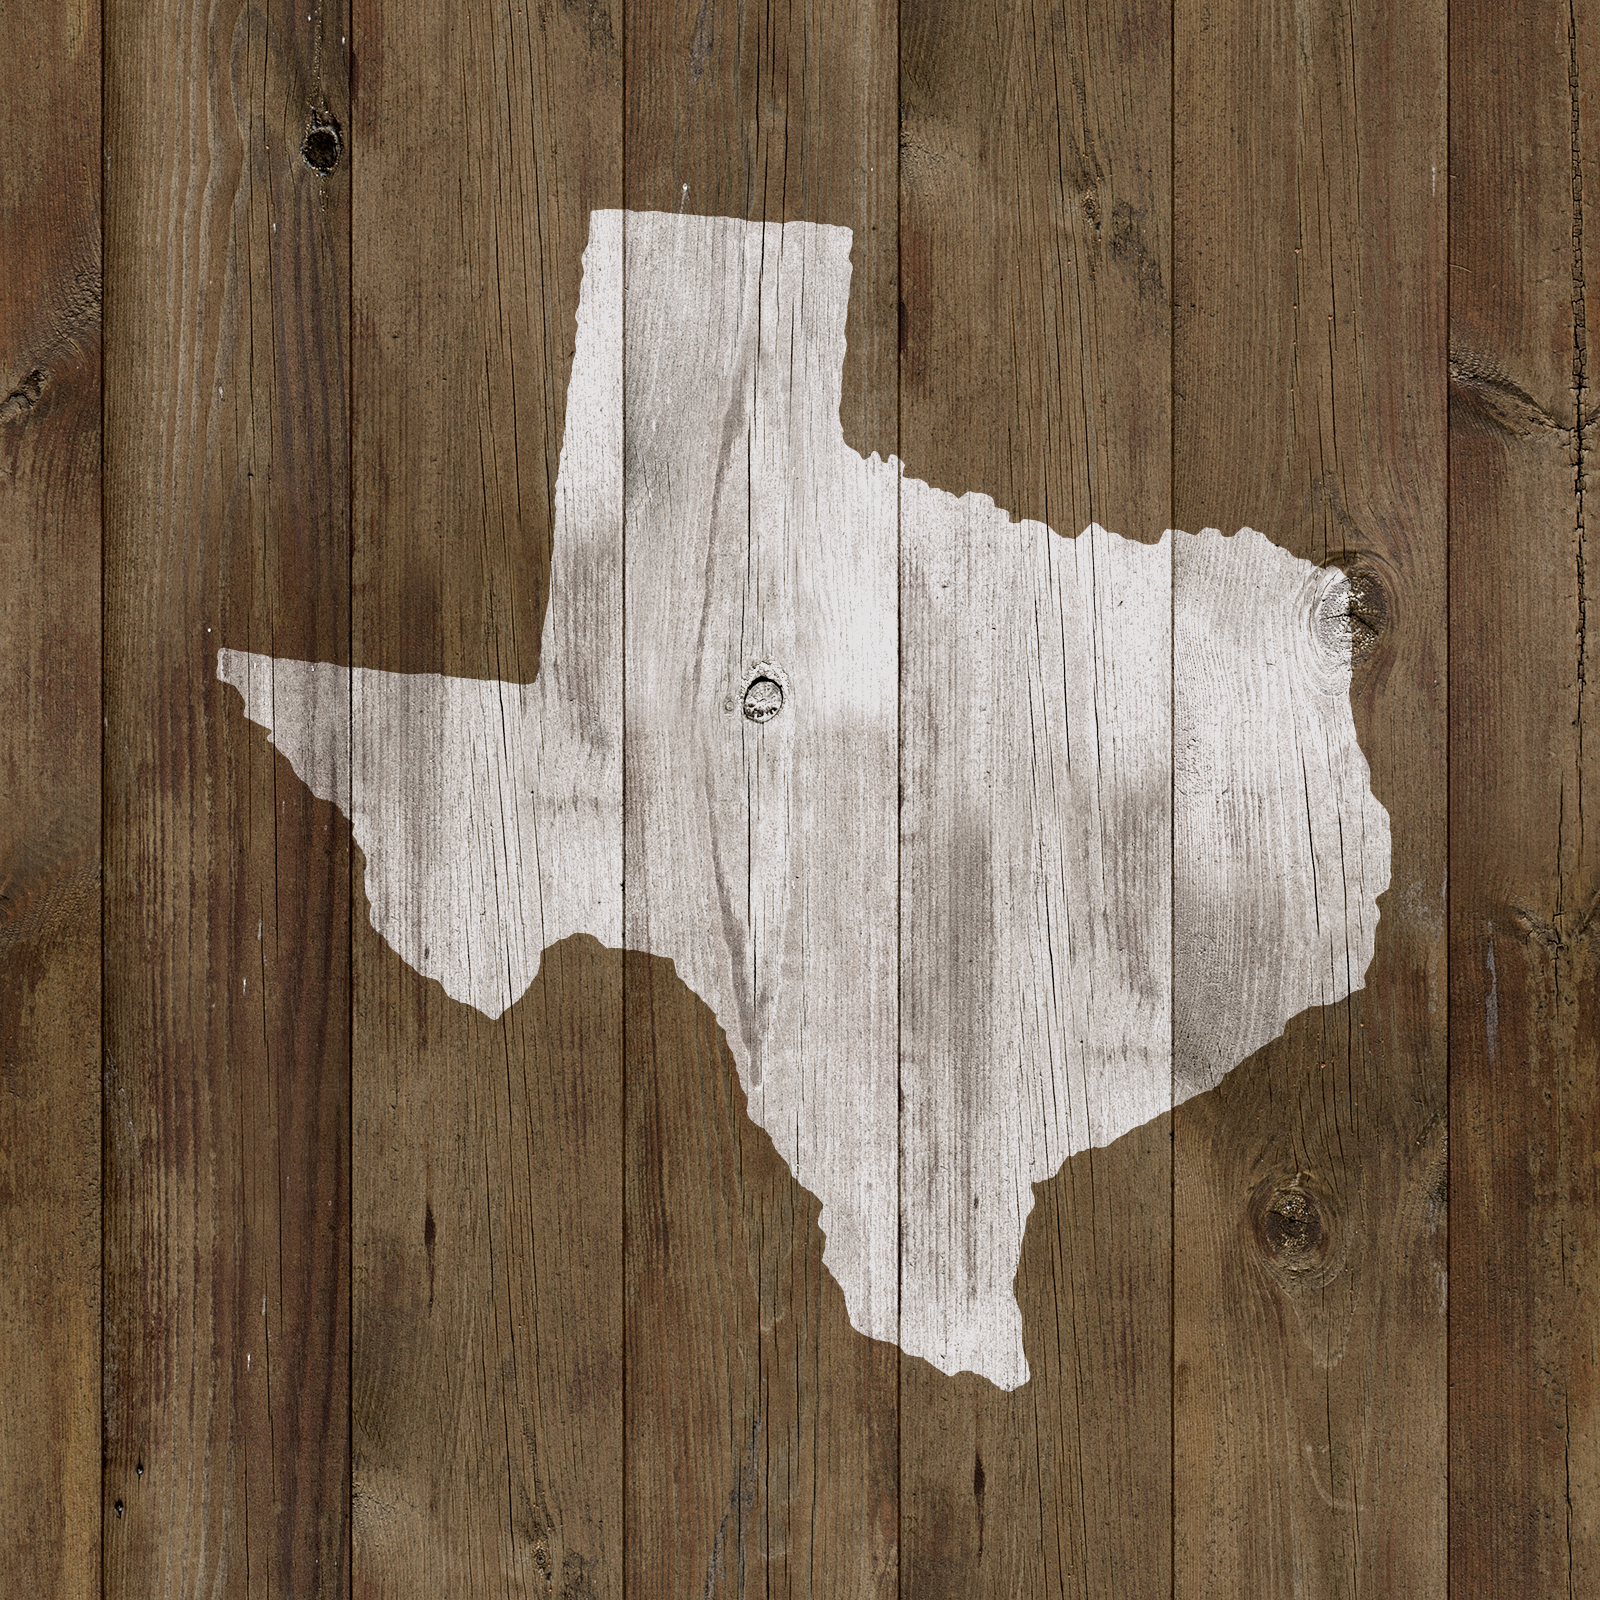 Texas State Stencil - Reusable Stencils of Texas State in Multiple Sizes